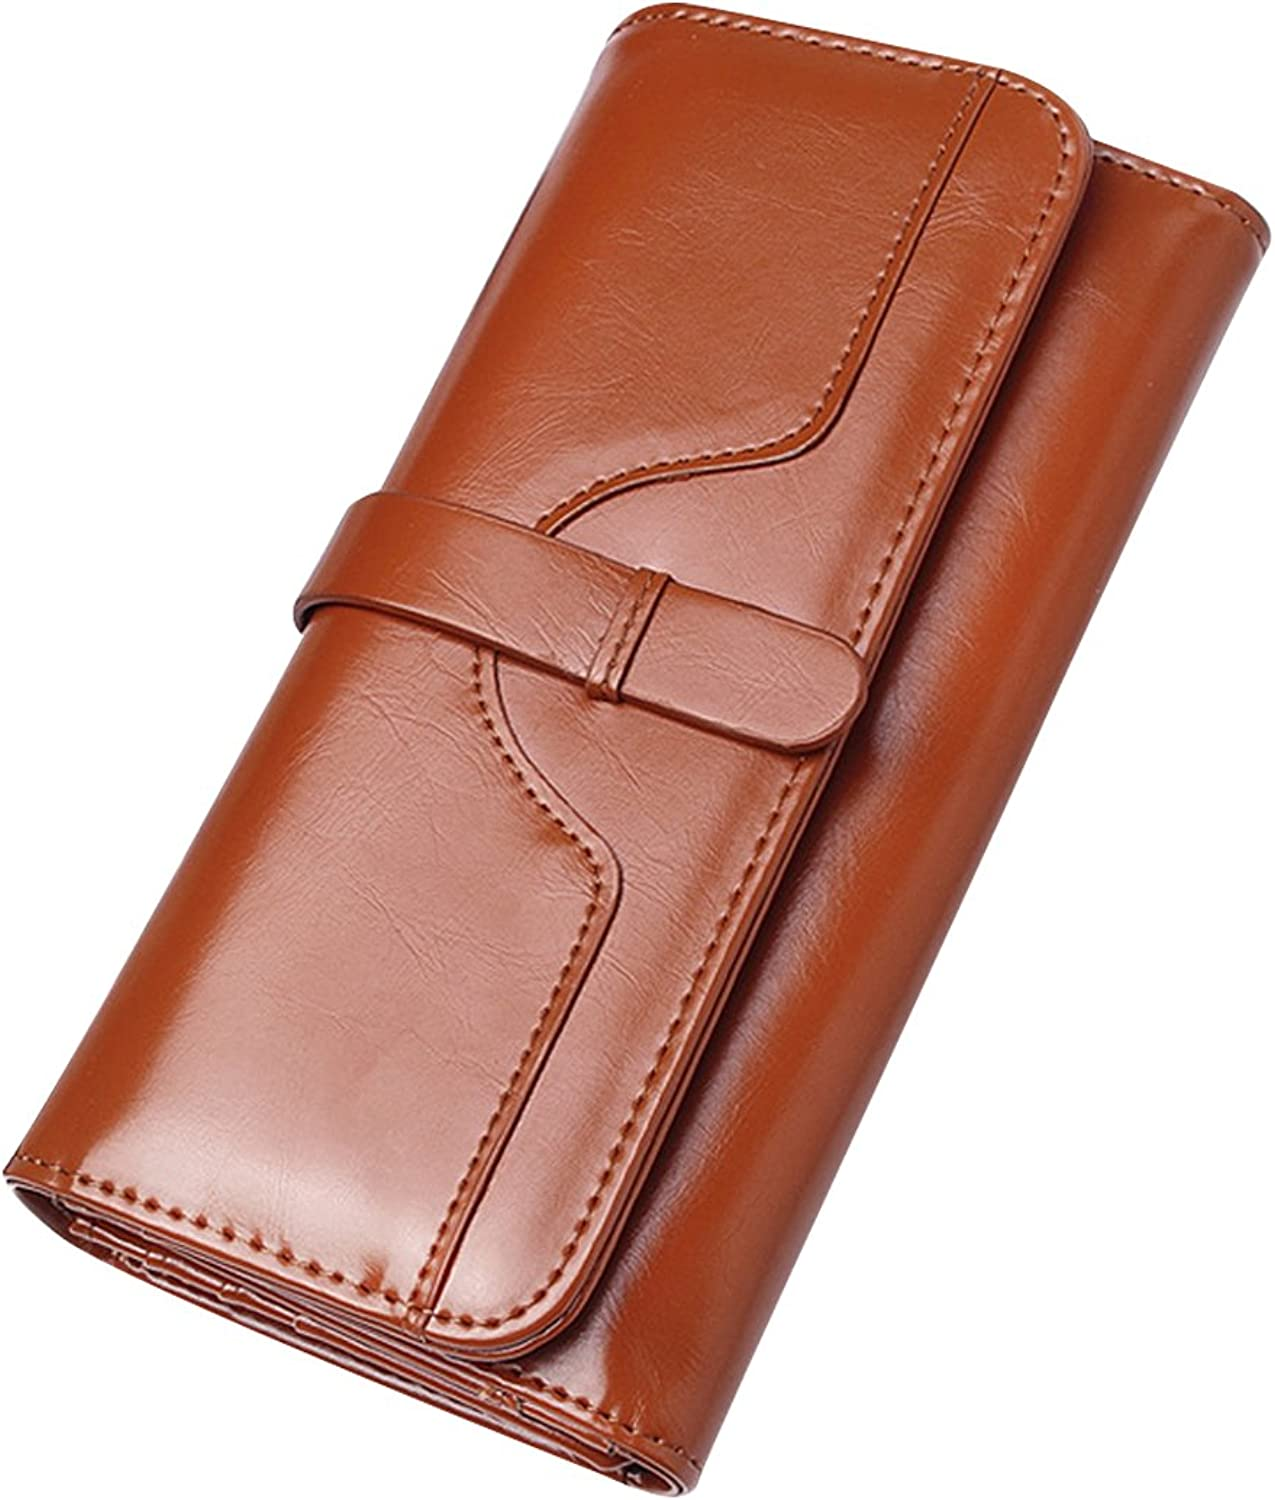 Bzybel Women's Leather Trifold Wallet Clutch Long Orgainer Purse